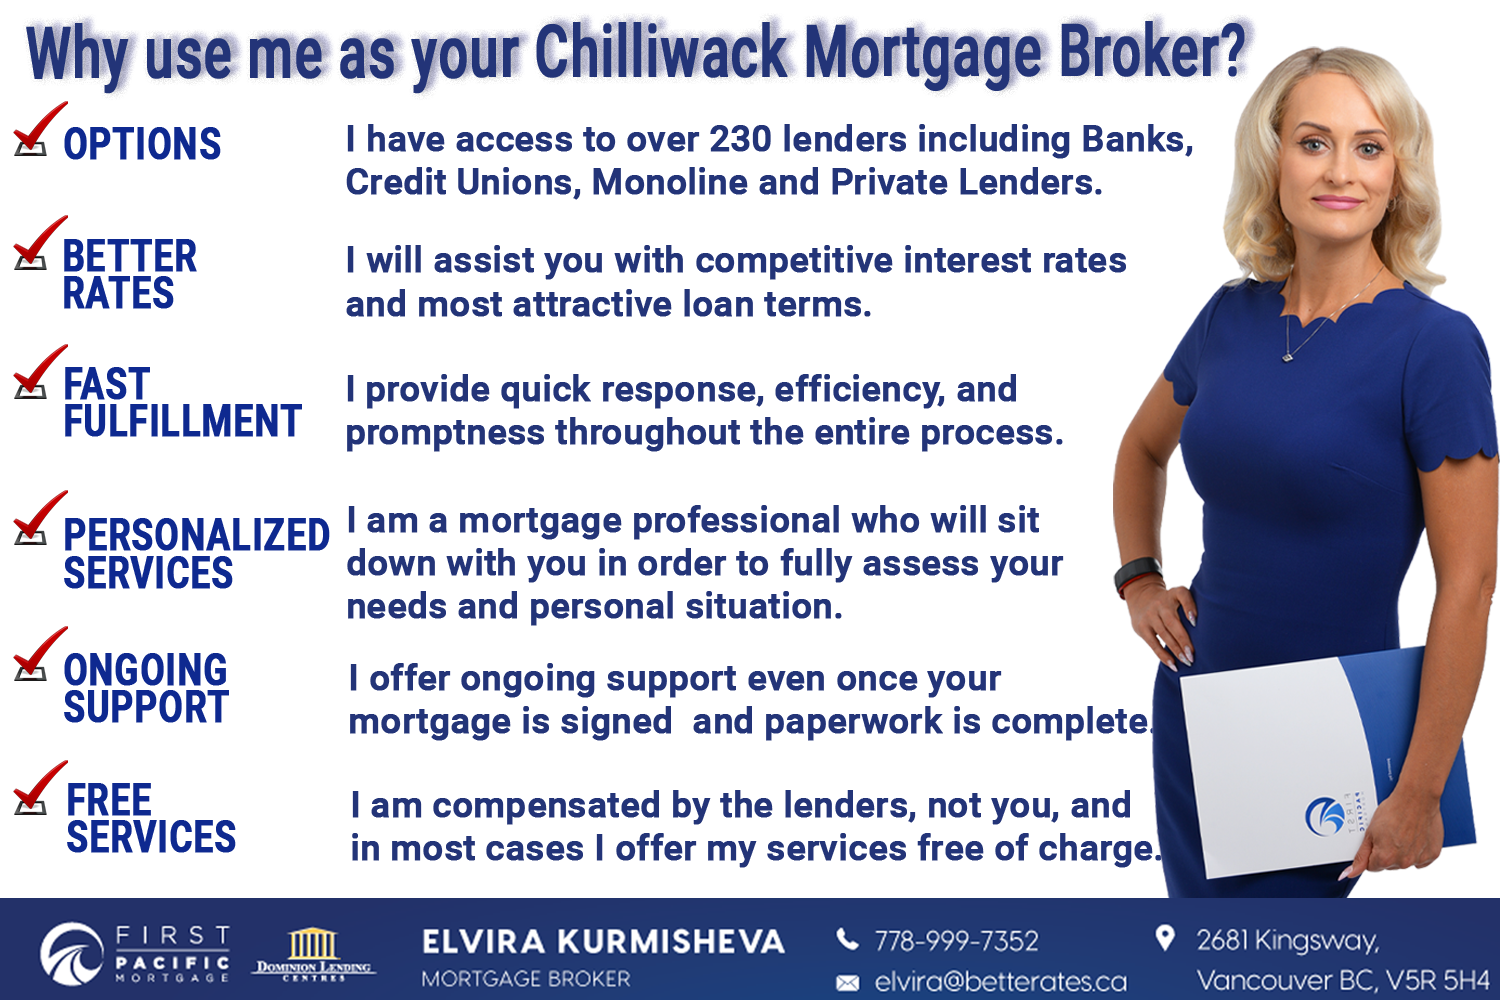 Picture of Chilliwack mortgage broker